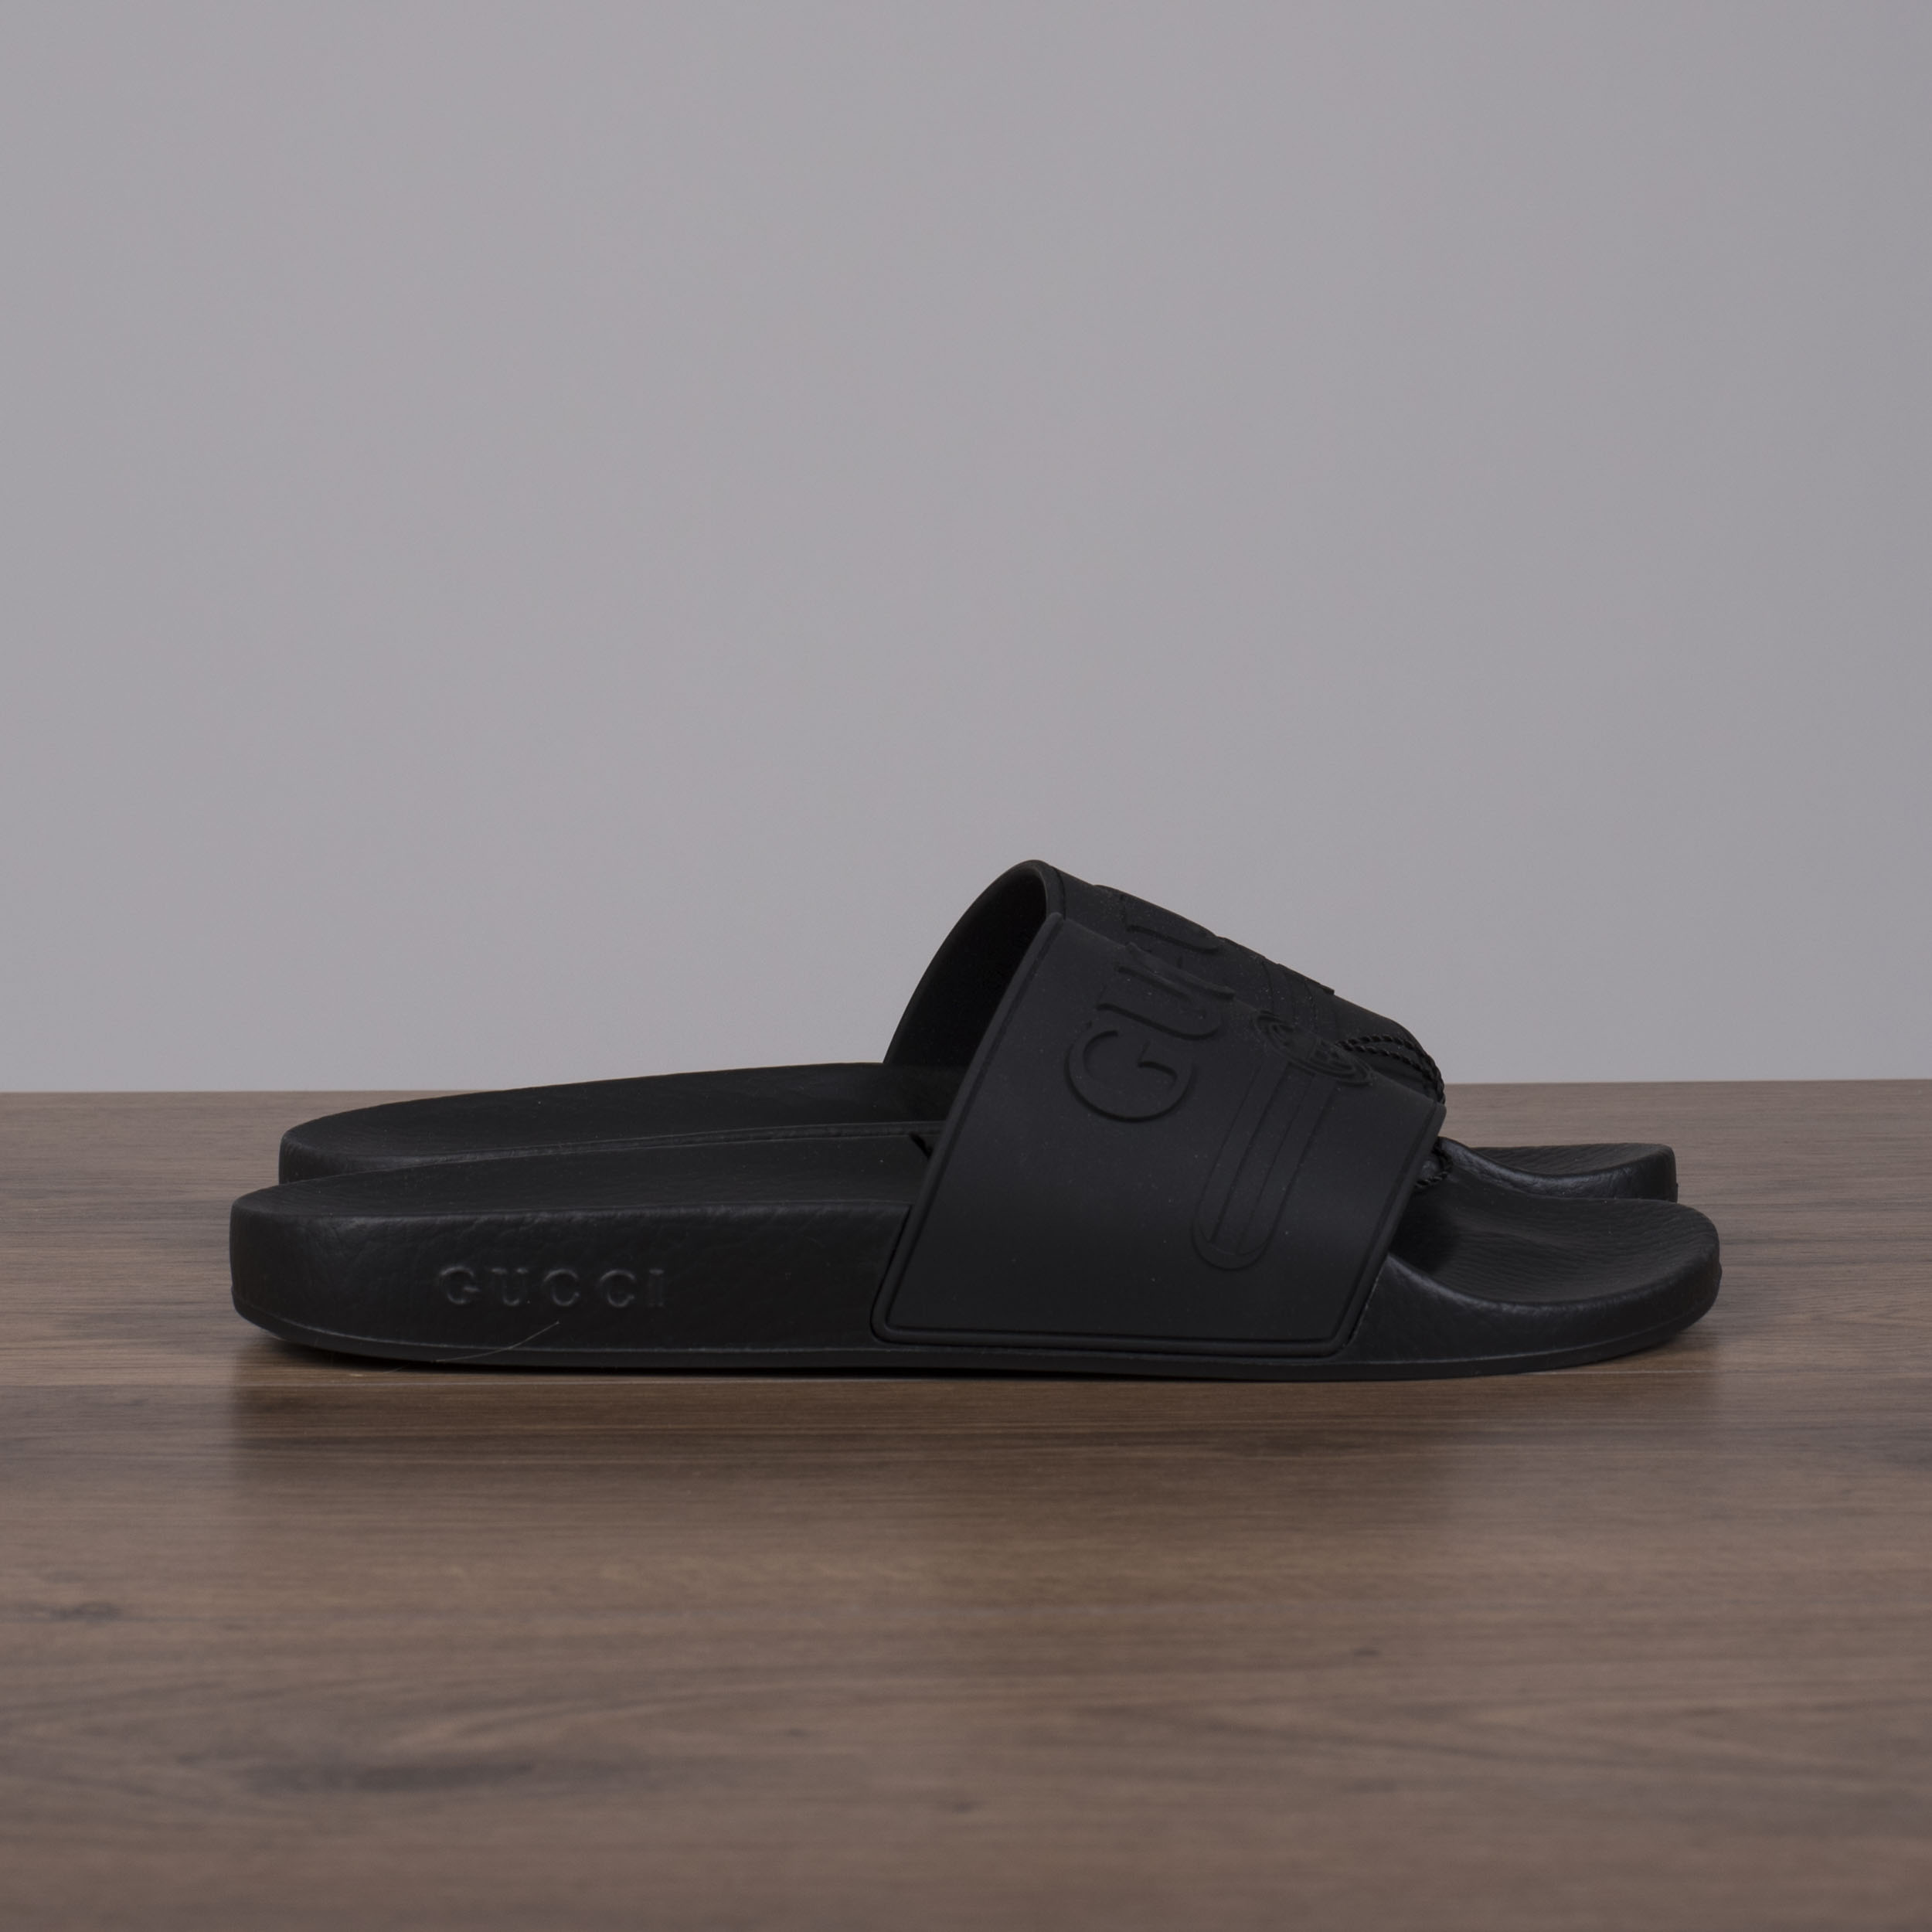 2bb55631b039 Black Rubber New with tags 100% Authentic. — Please copy the image url for  HQ pictures